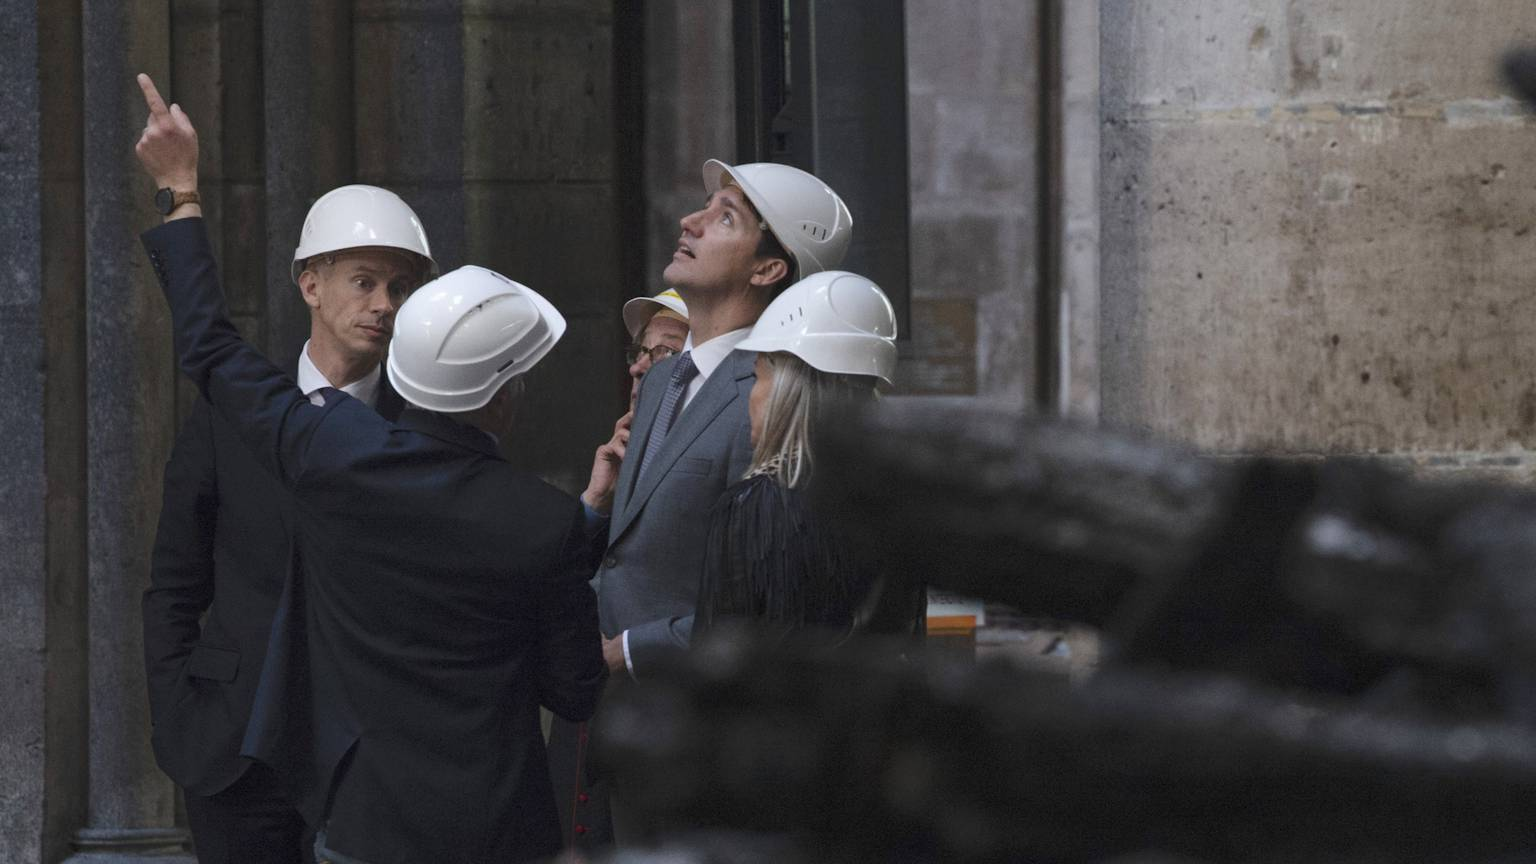 Trudeau offers Canadian lumber, steel to help rebuild France's Notre-Dame Cathedral